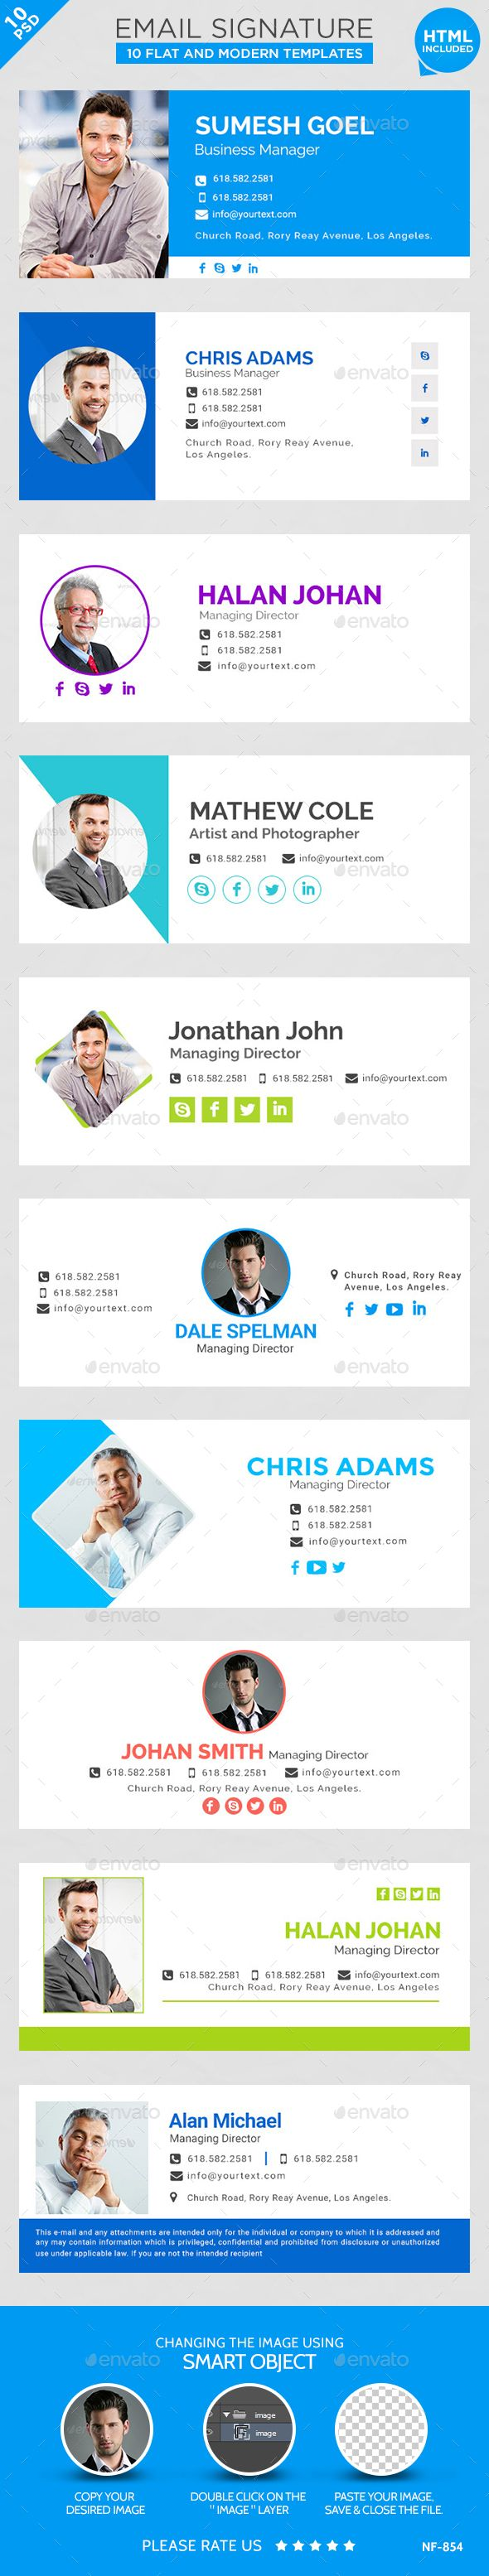 EmailSignatures 10 Templates by doto Email Signature